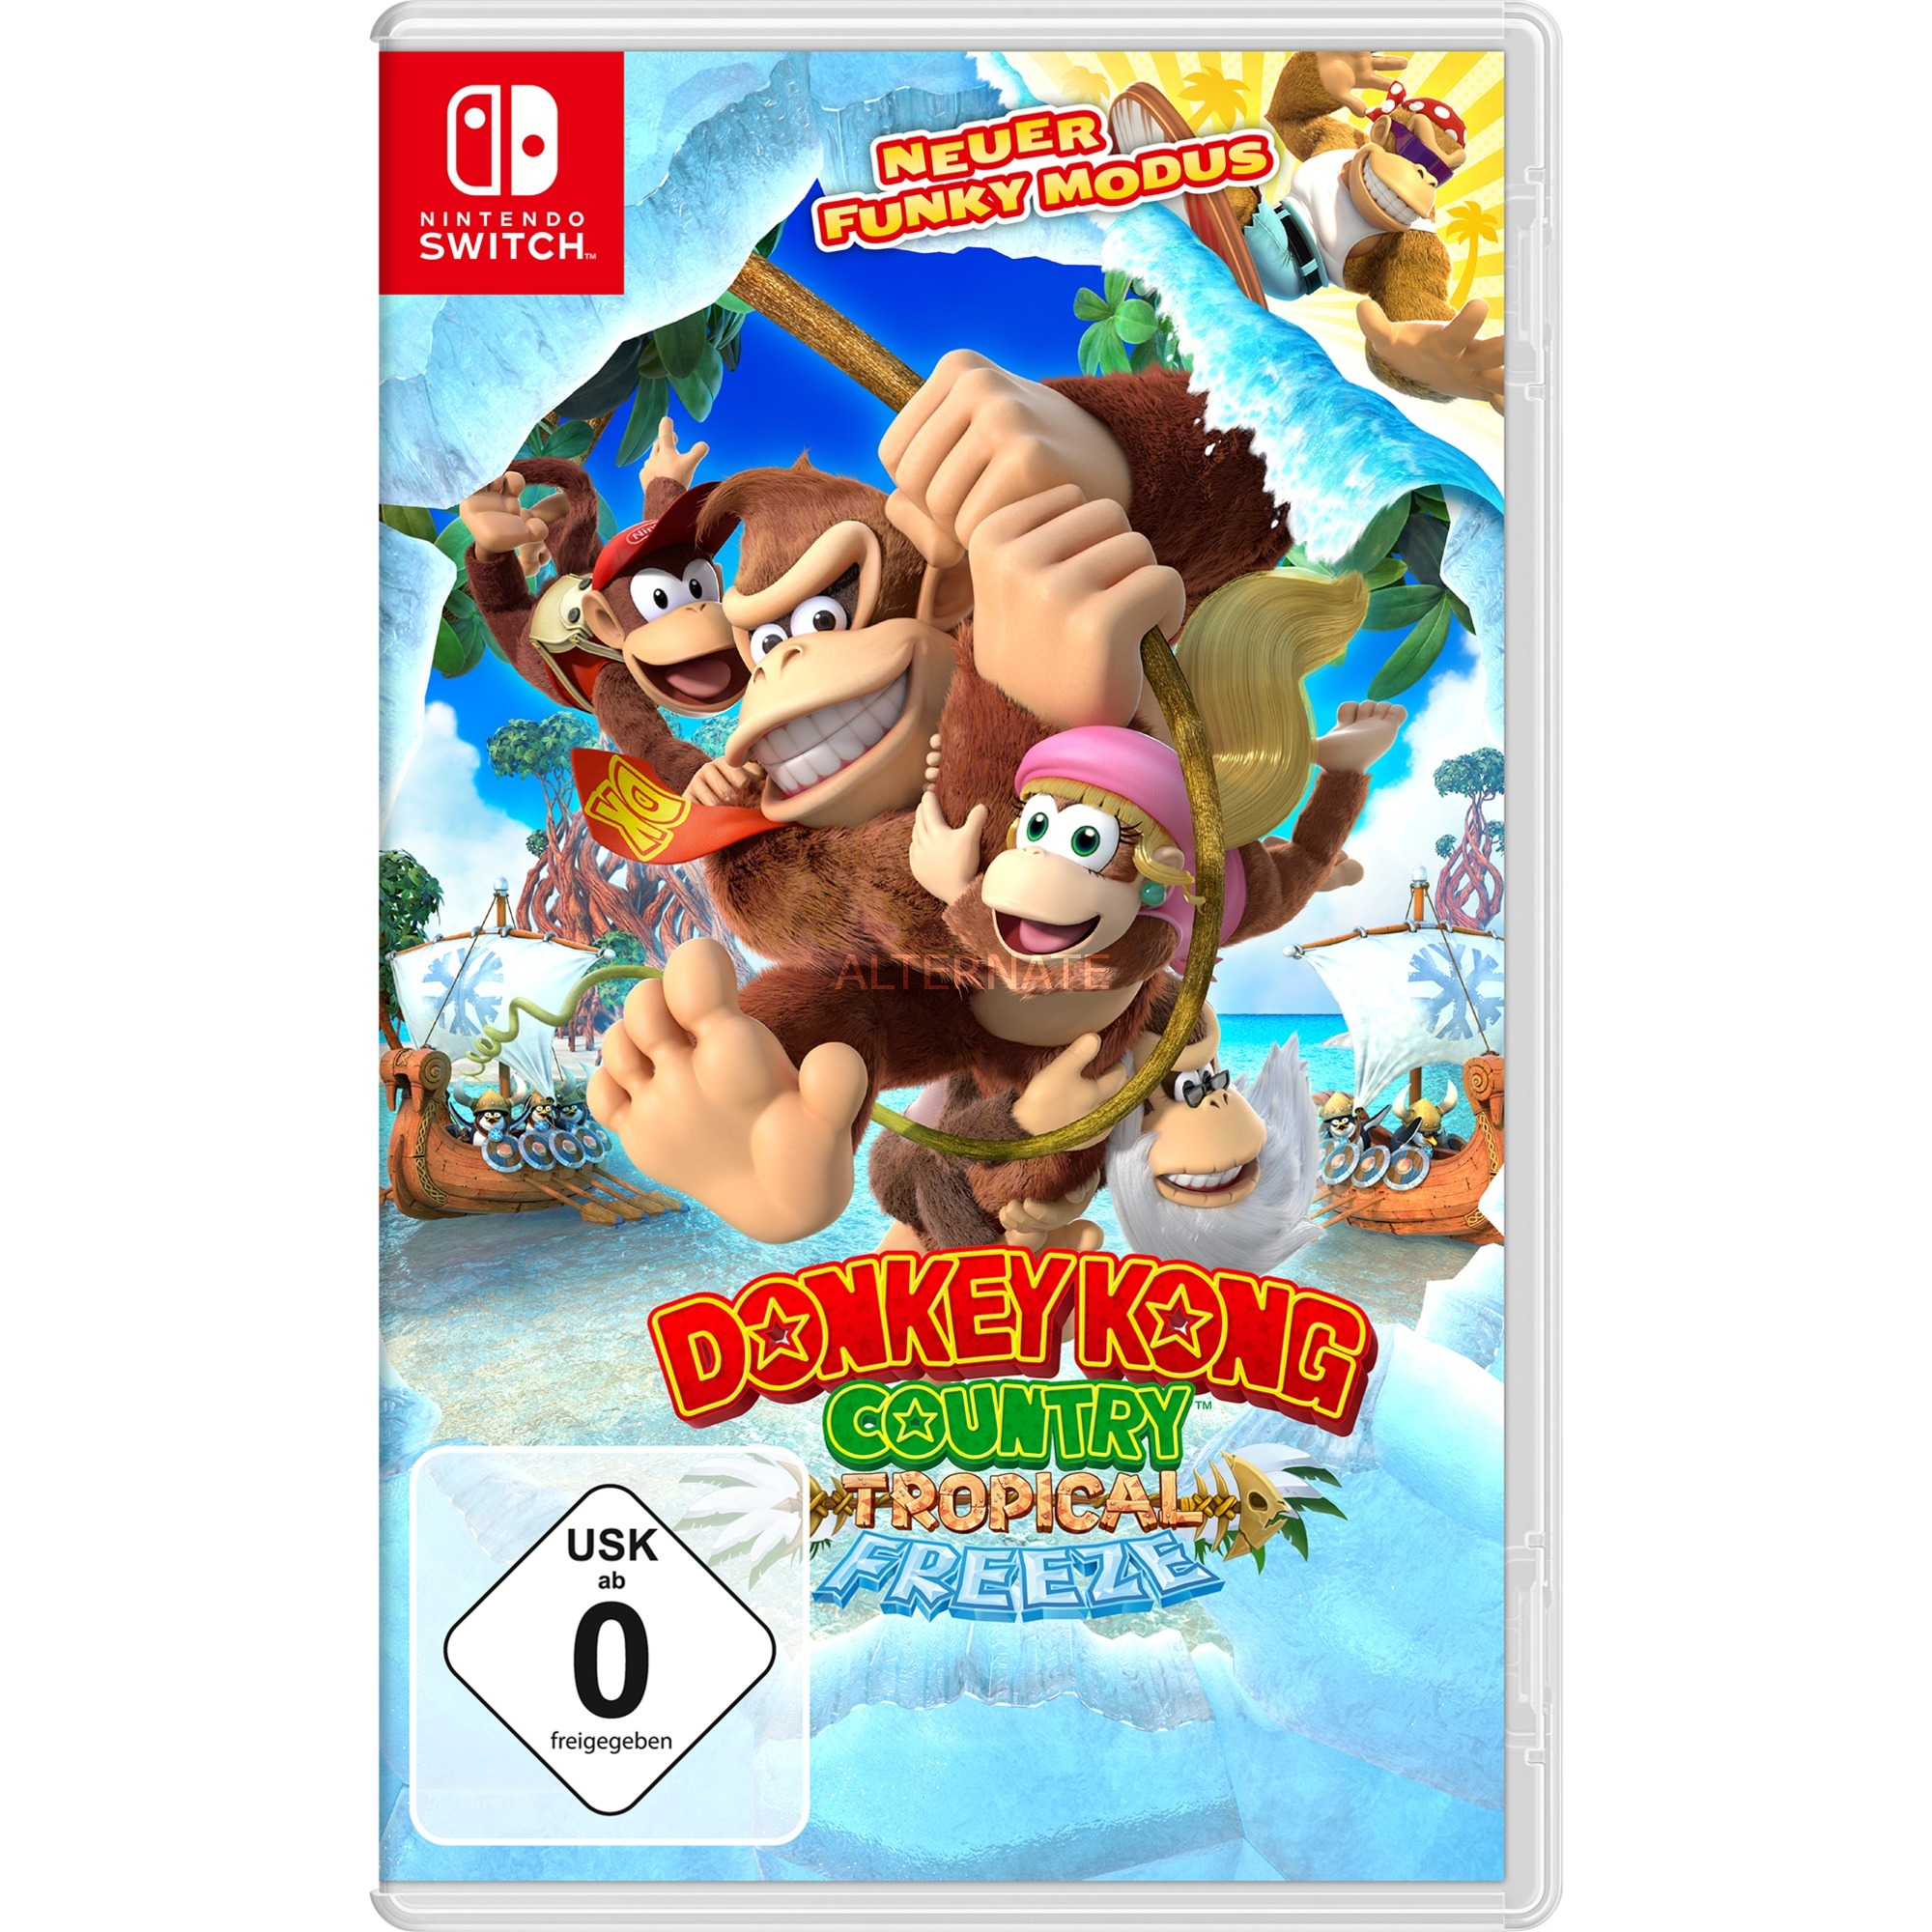 Donkey Kong Country Tropical Freeze vídeo juego Nintendo Switch Básico